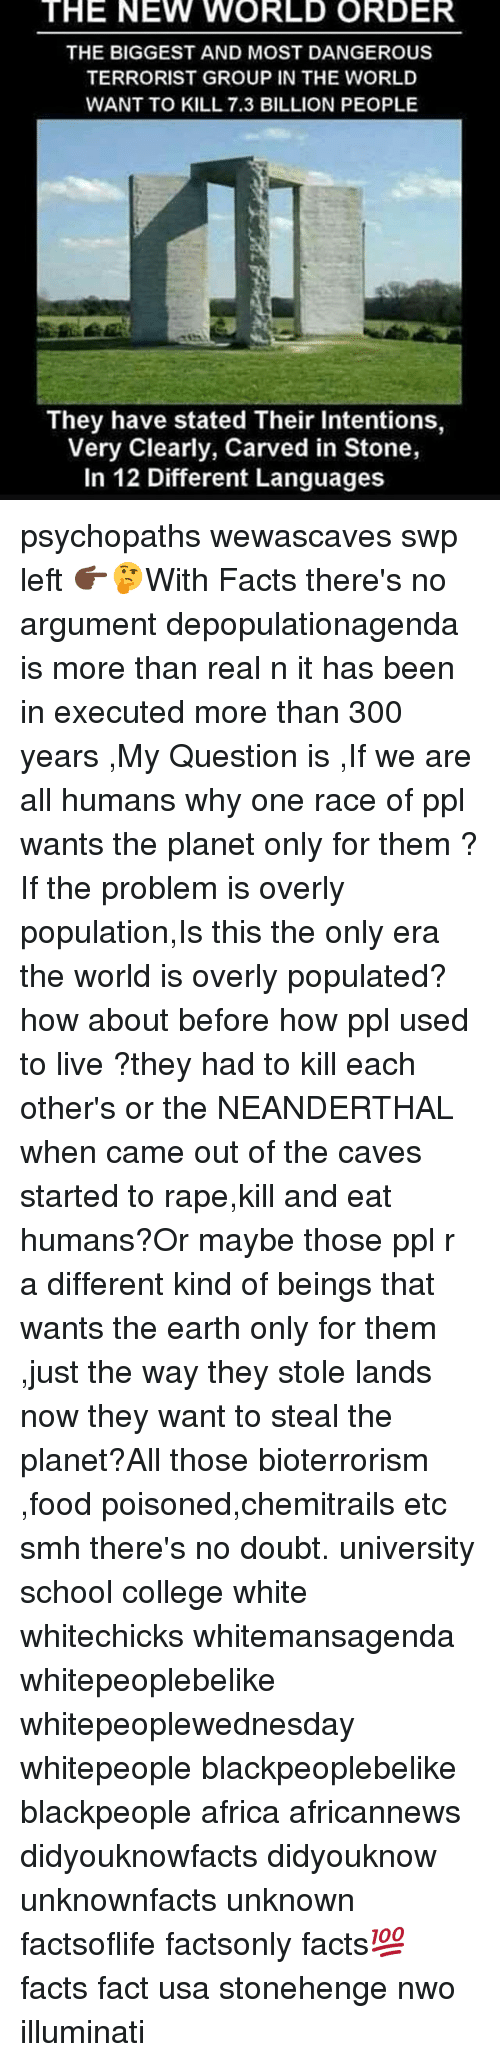 Neanderthal - Kill, Eat And Breed